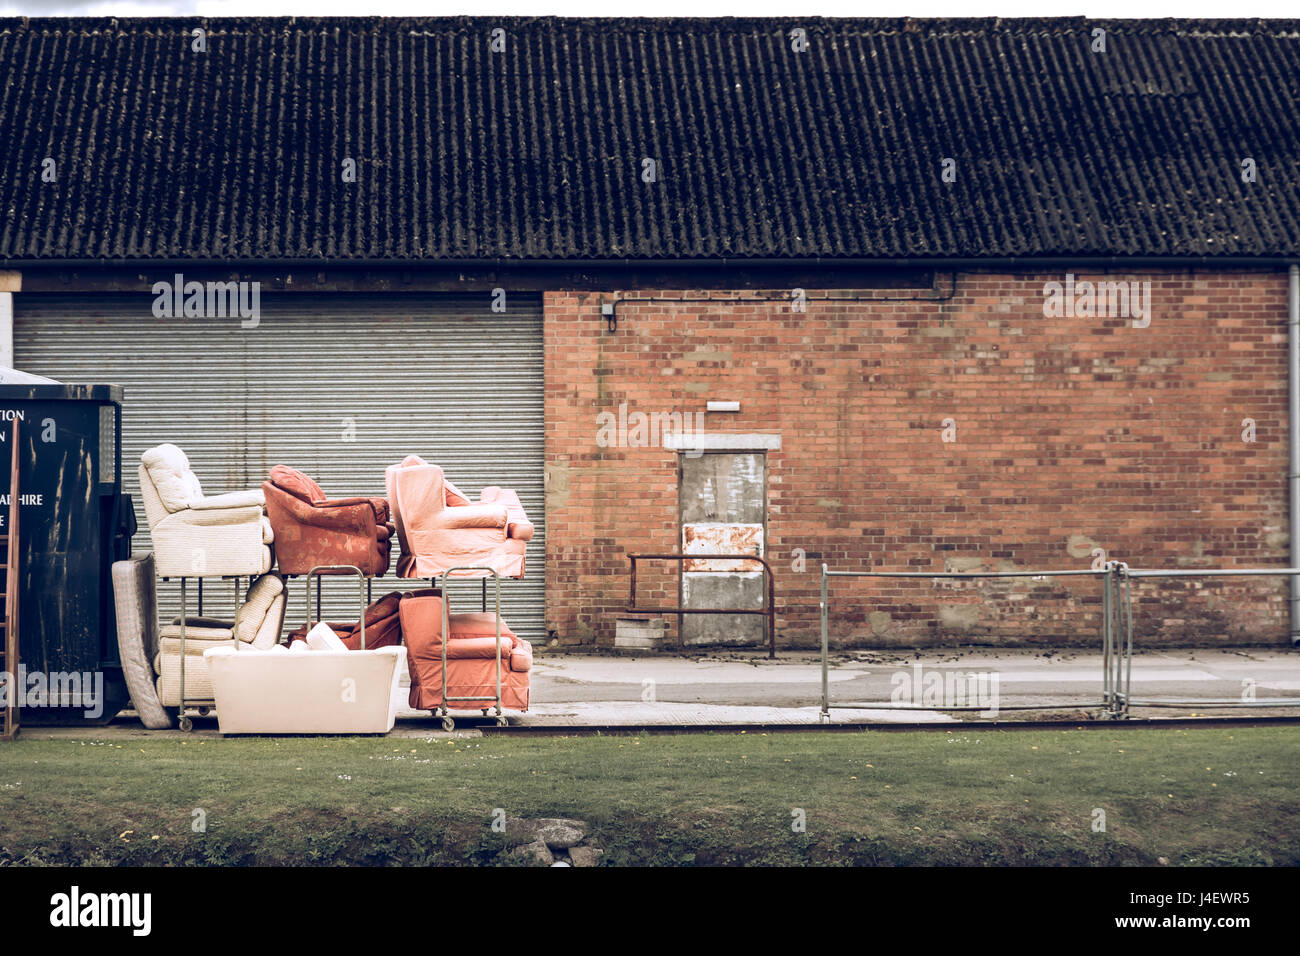 A pile of old sofas outside a warehouse - Stock Image